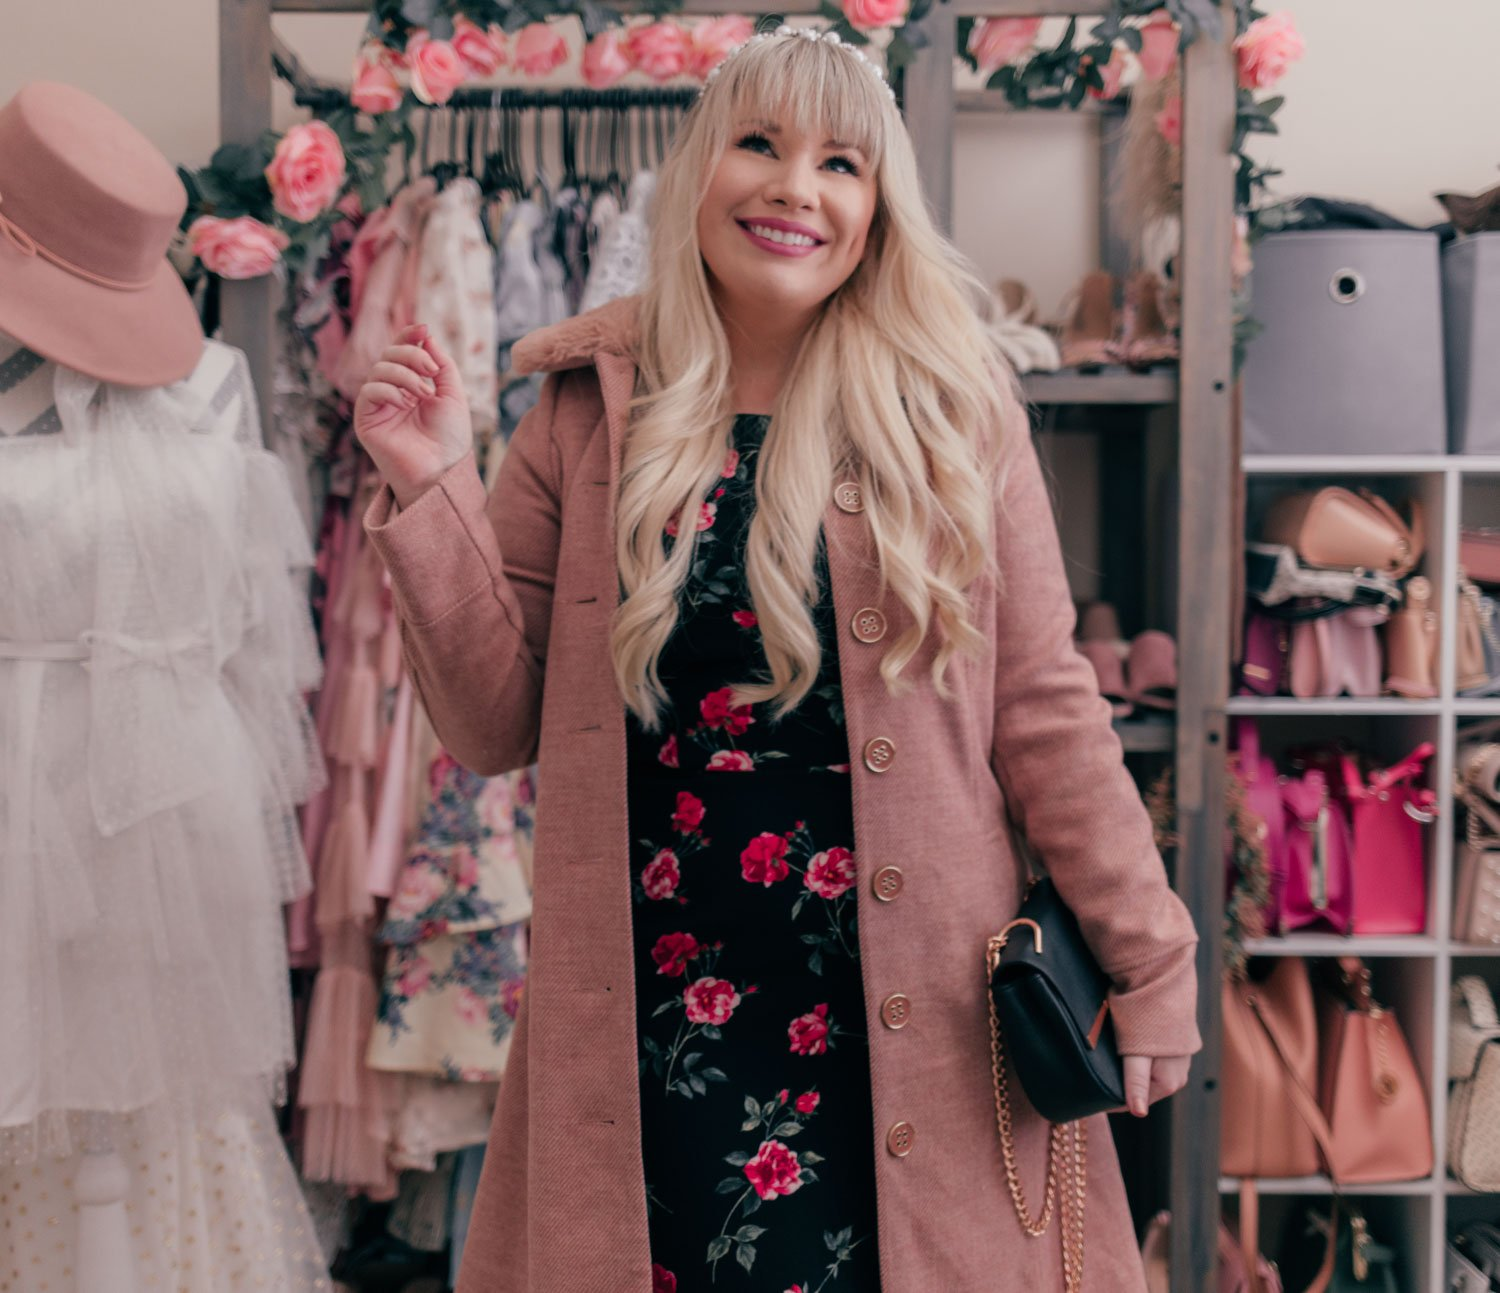 Fashion Blogger Elizabeth Hugen of Lizzie in Lace styles a black floral dress and pink faux fur coat